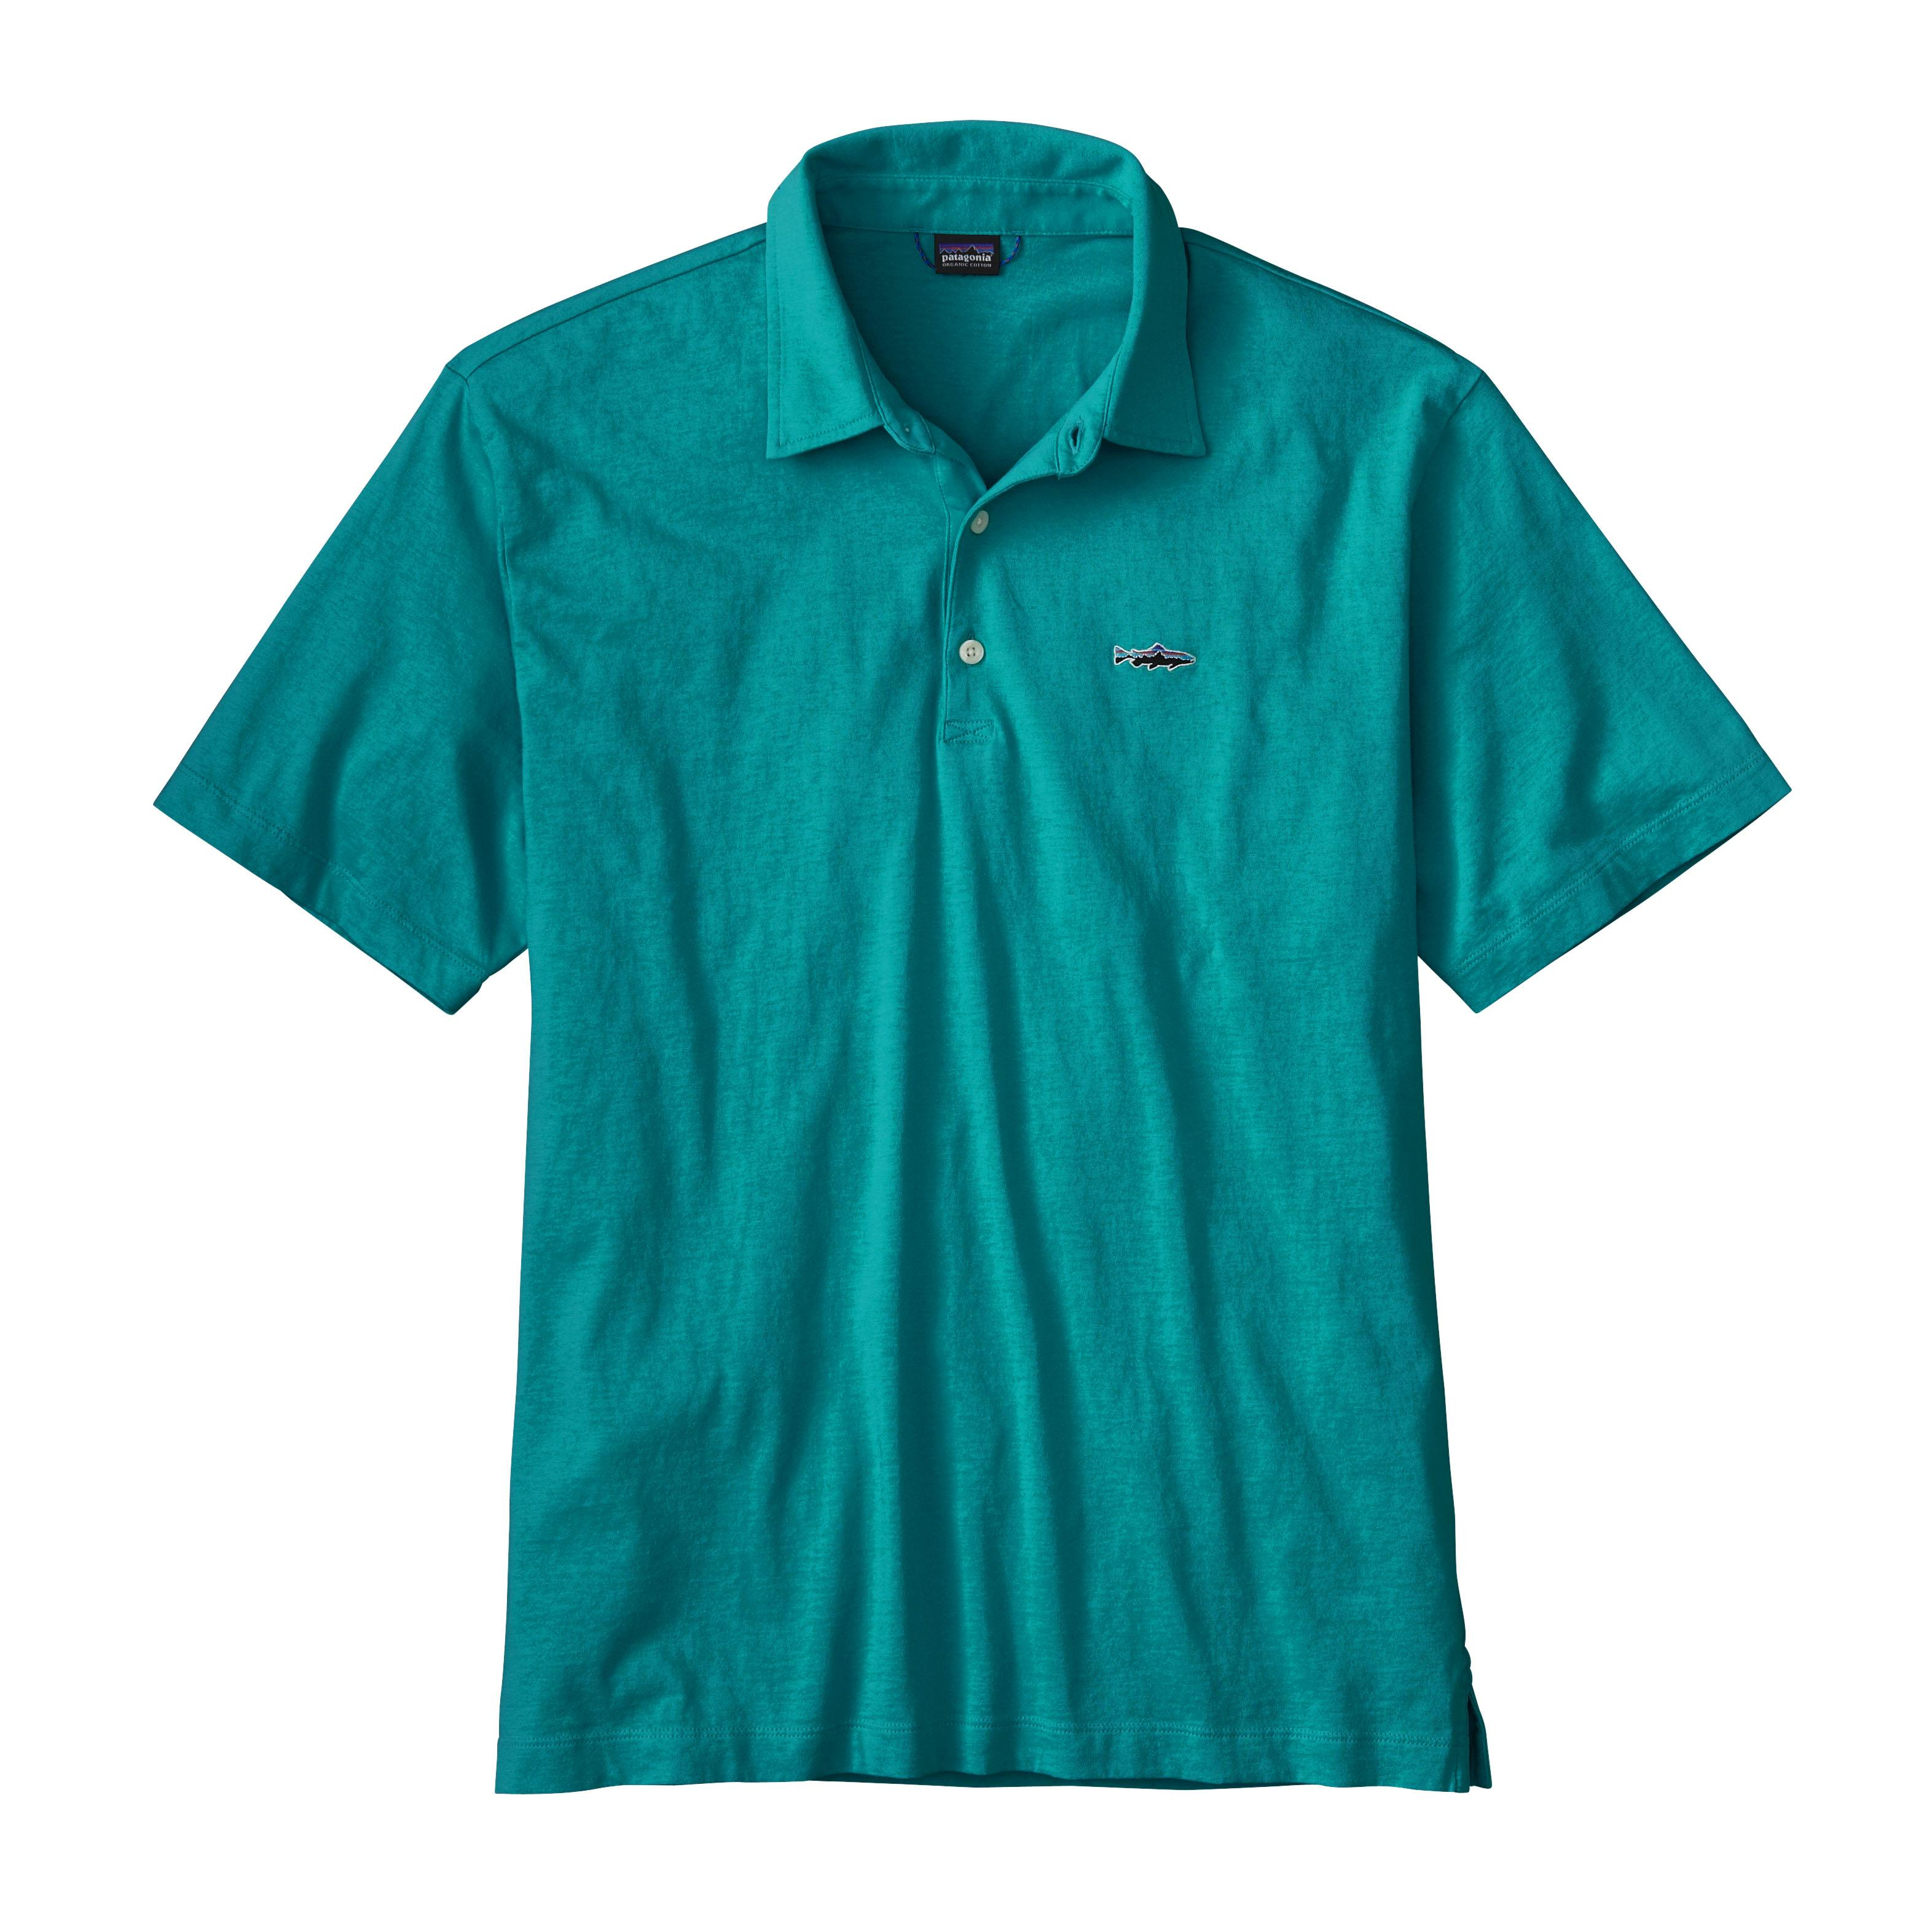 Patagonia Men's Polo- Trout Fitz Roy shirt ELWB_BLUE